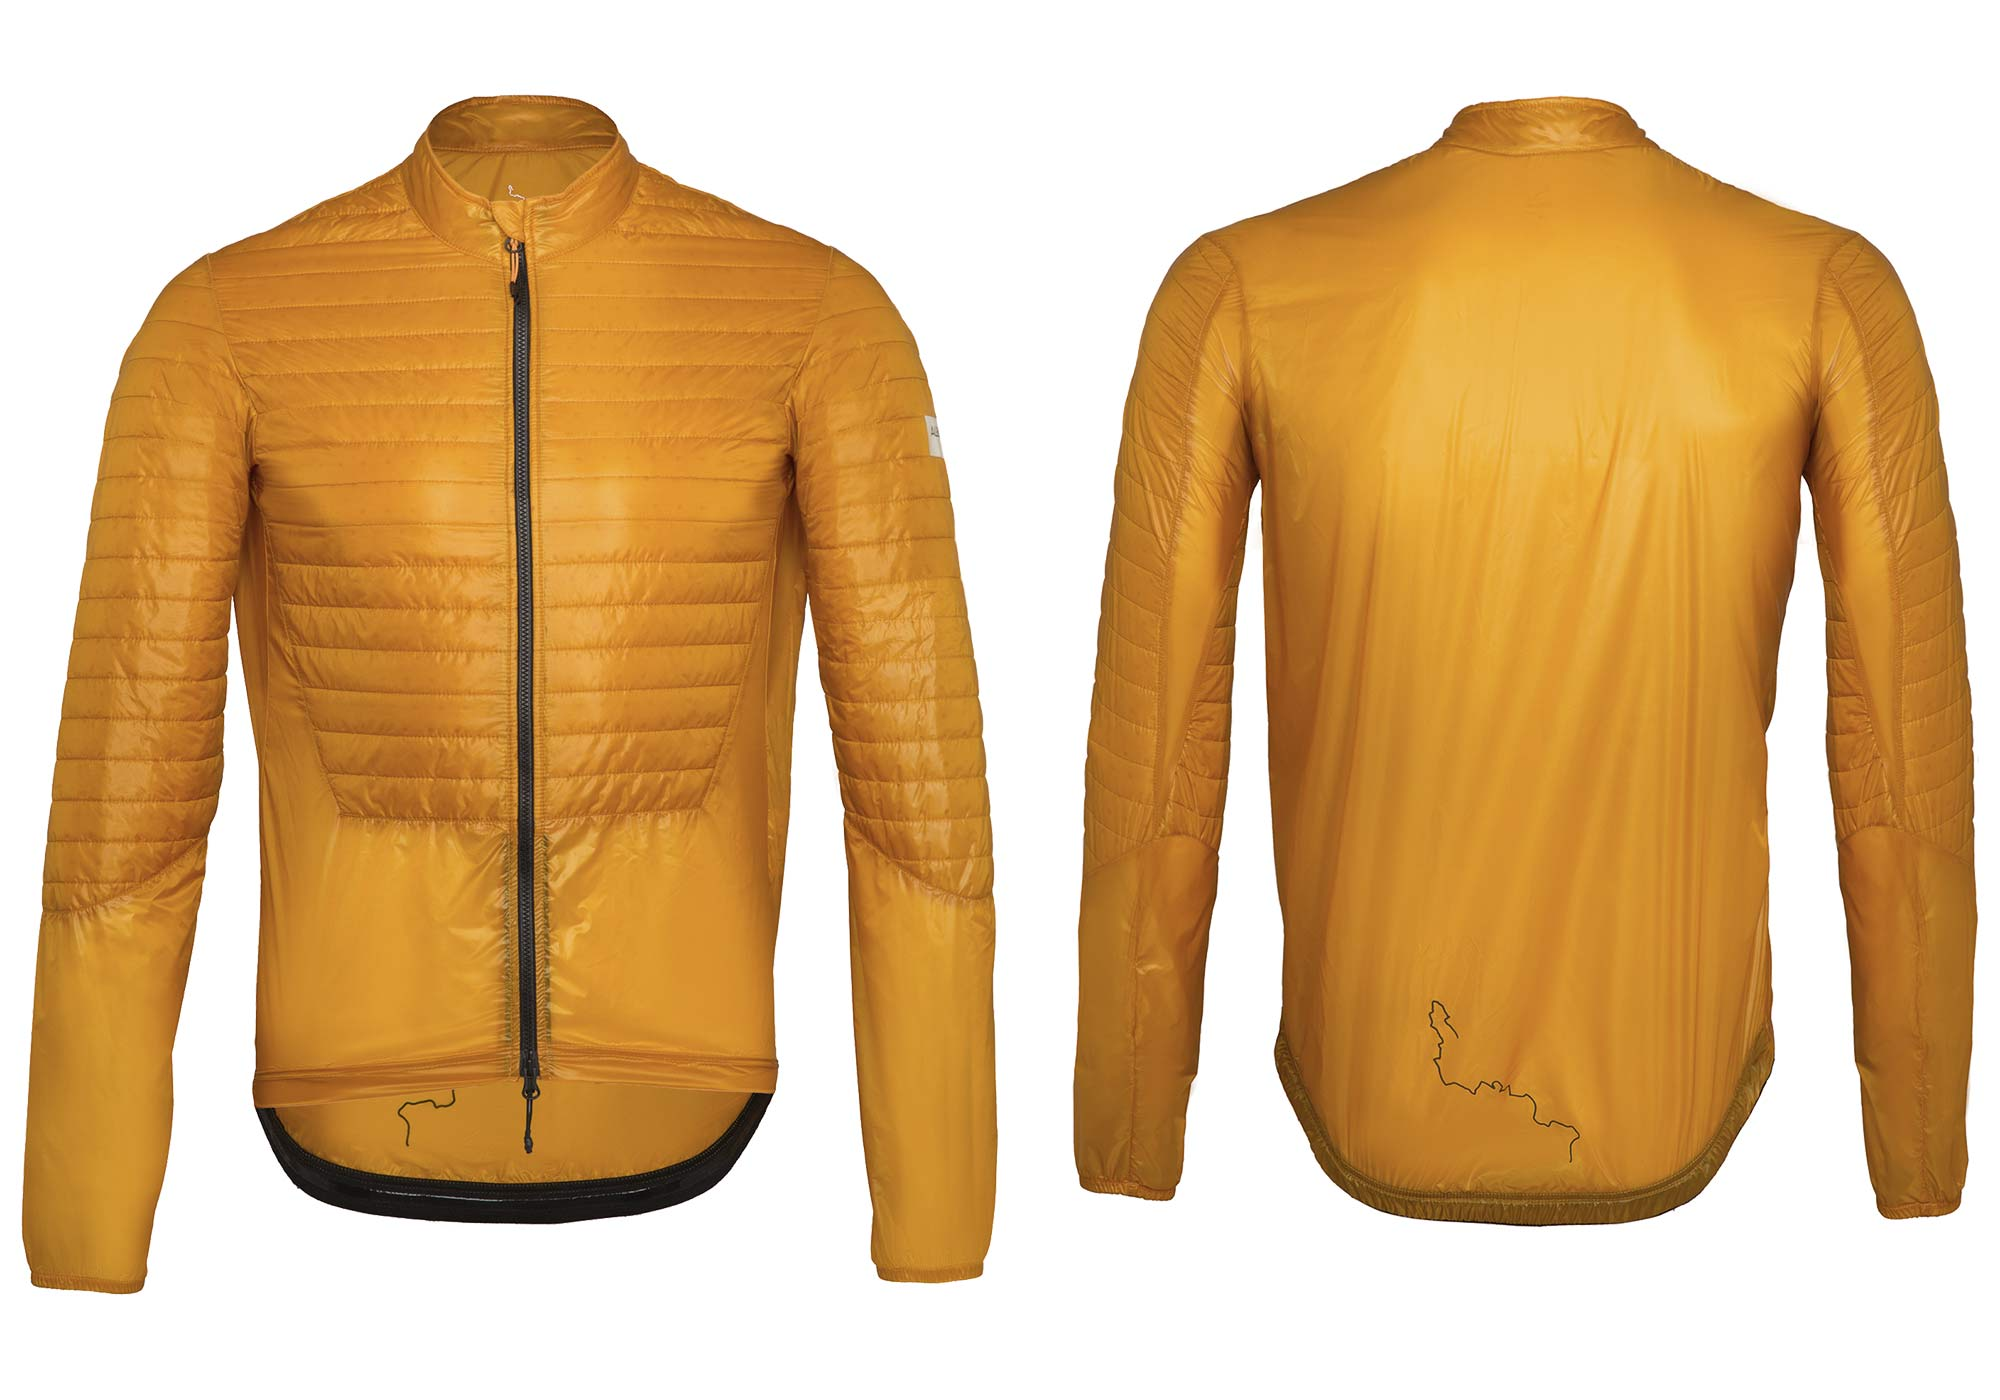 Albion Ultralight Insulated Jacket, ultra lightweight packable breathable eco cycling jacket